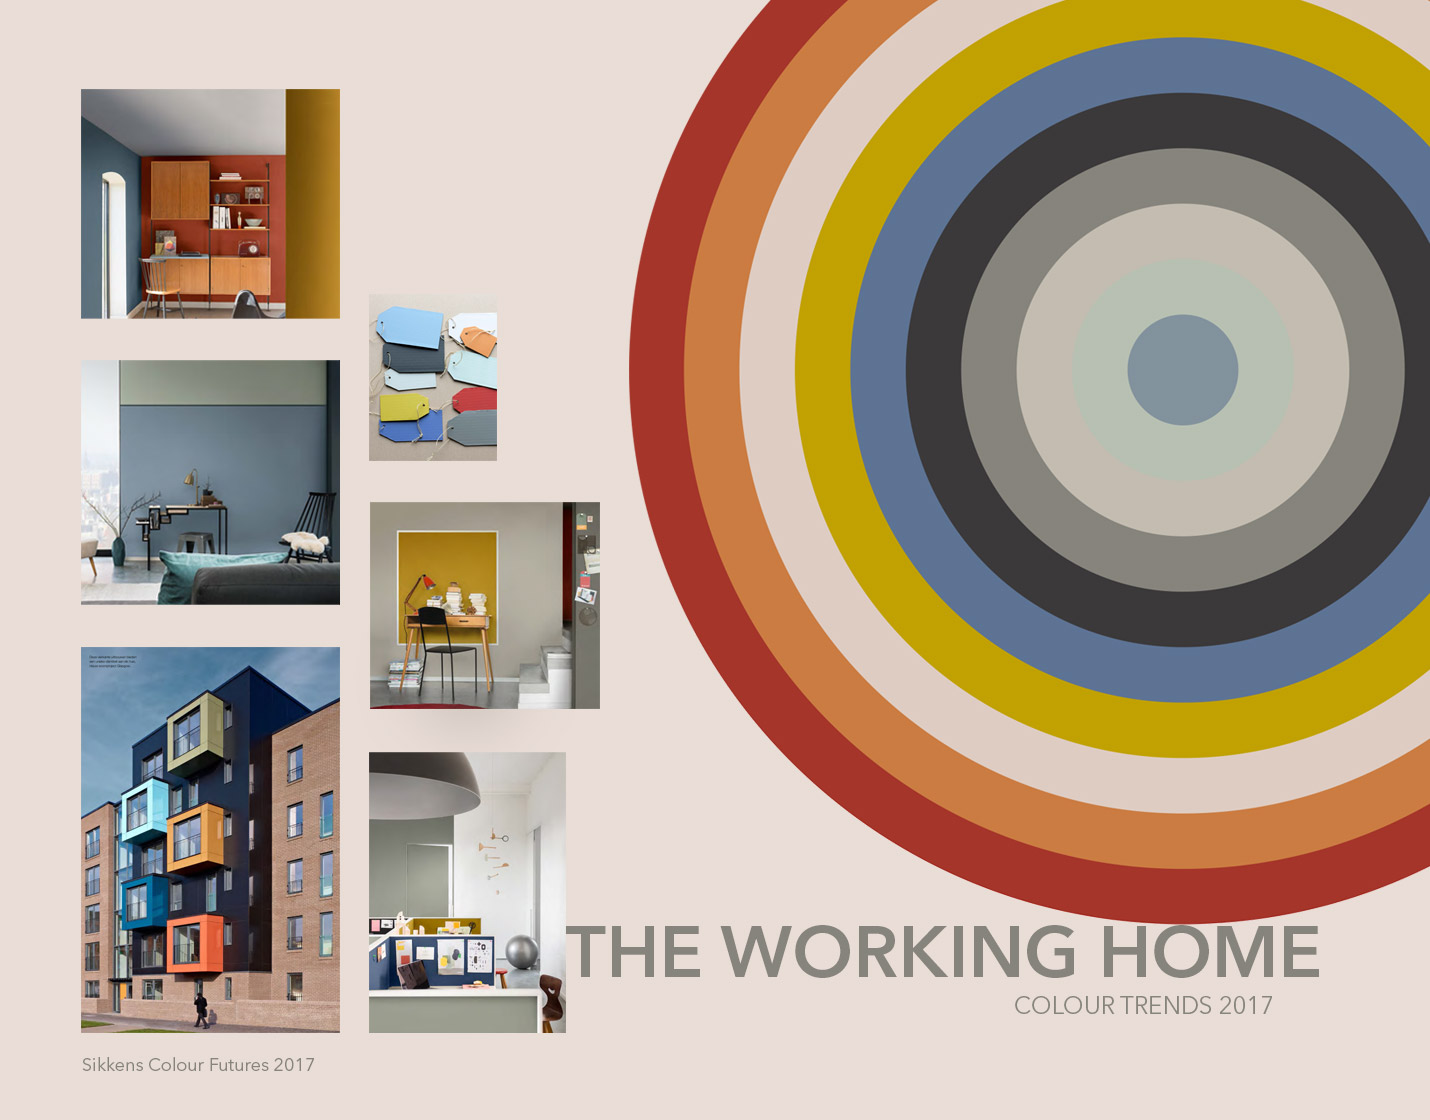 Archicolour - The Working Home